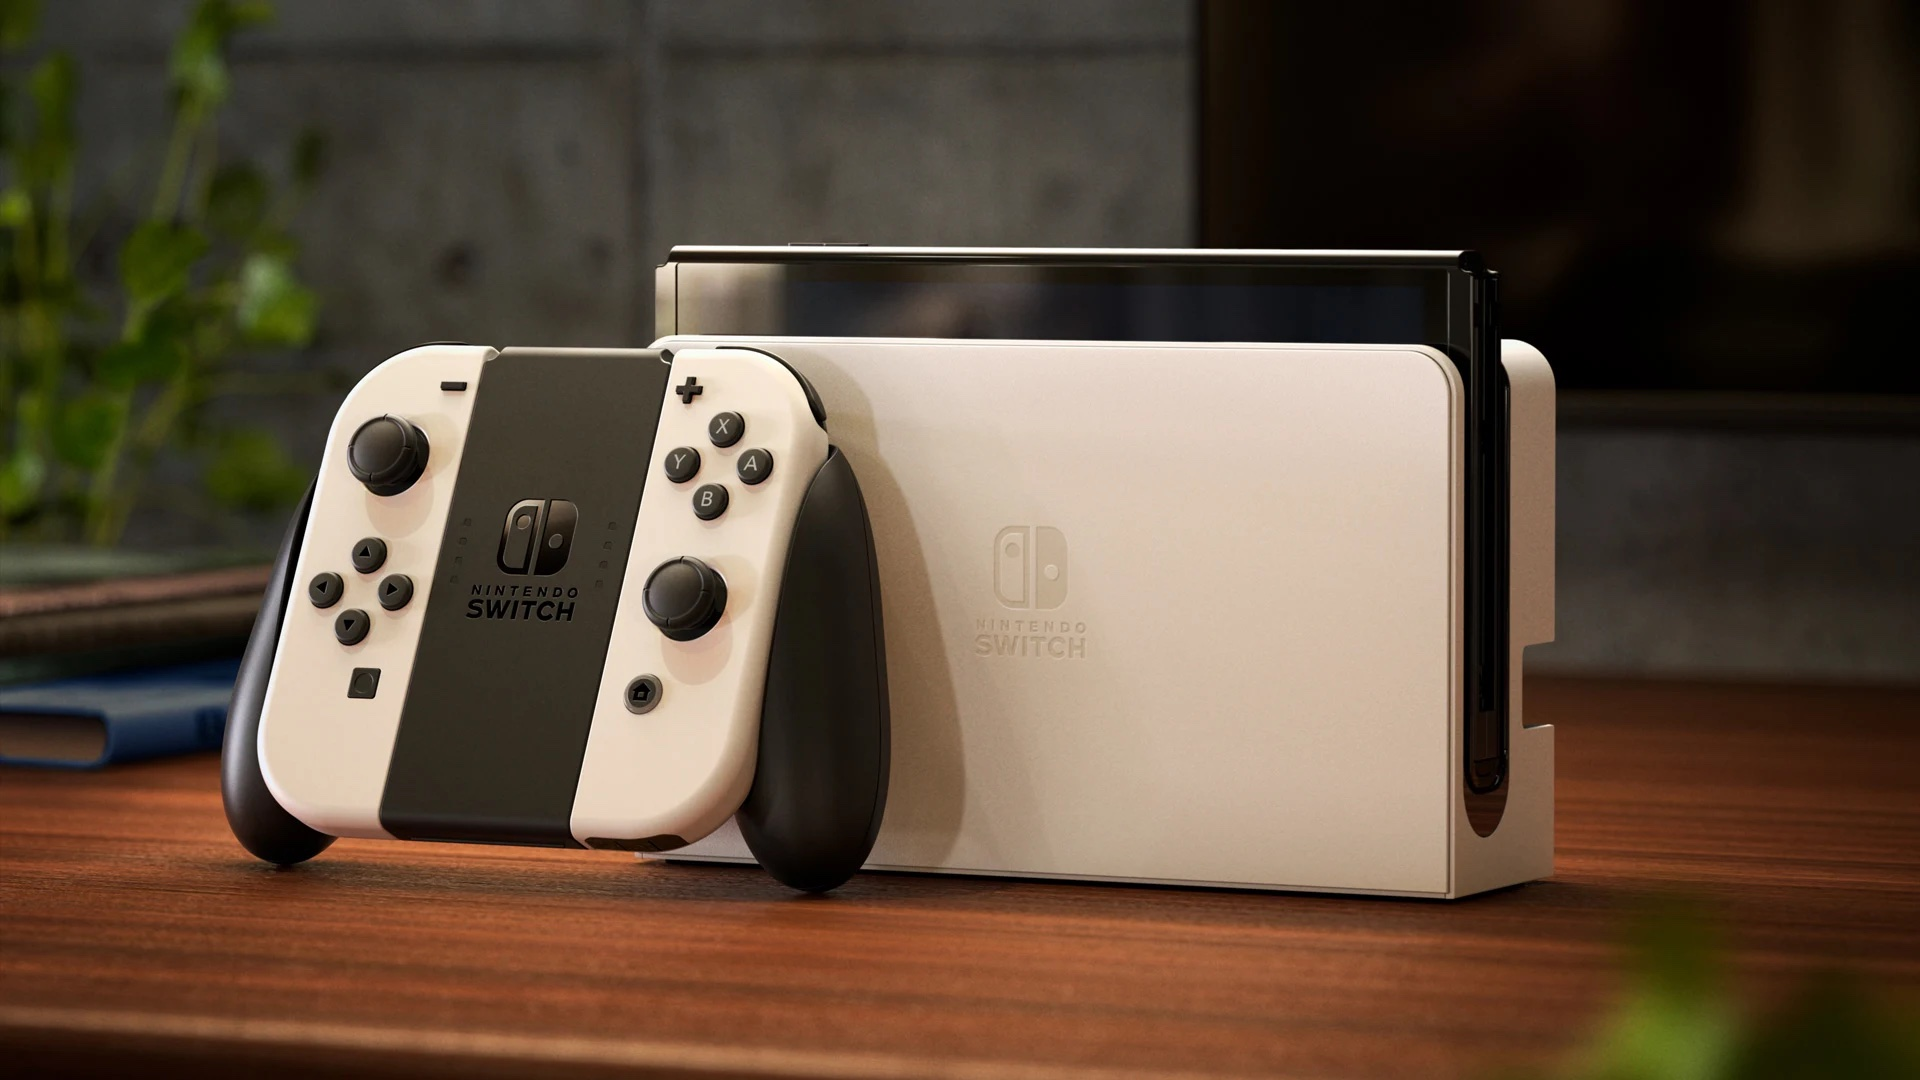 A photo of the new Nintendo Switch (OLED model) in white on a wooden table